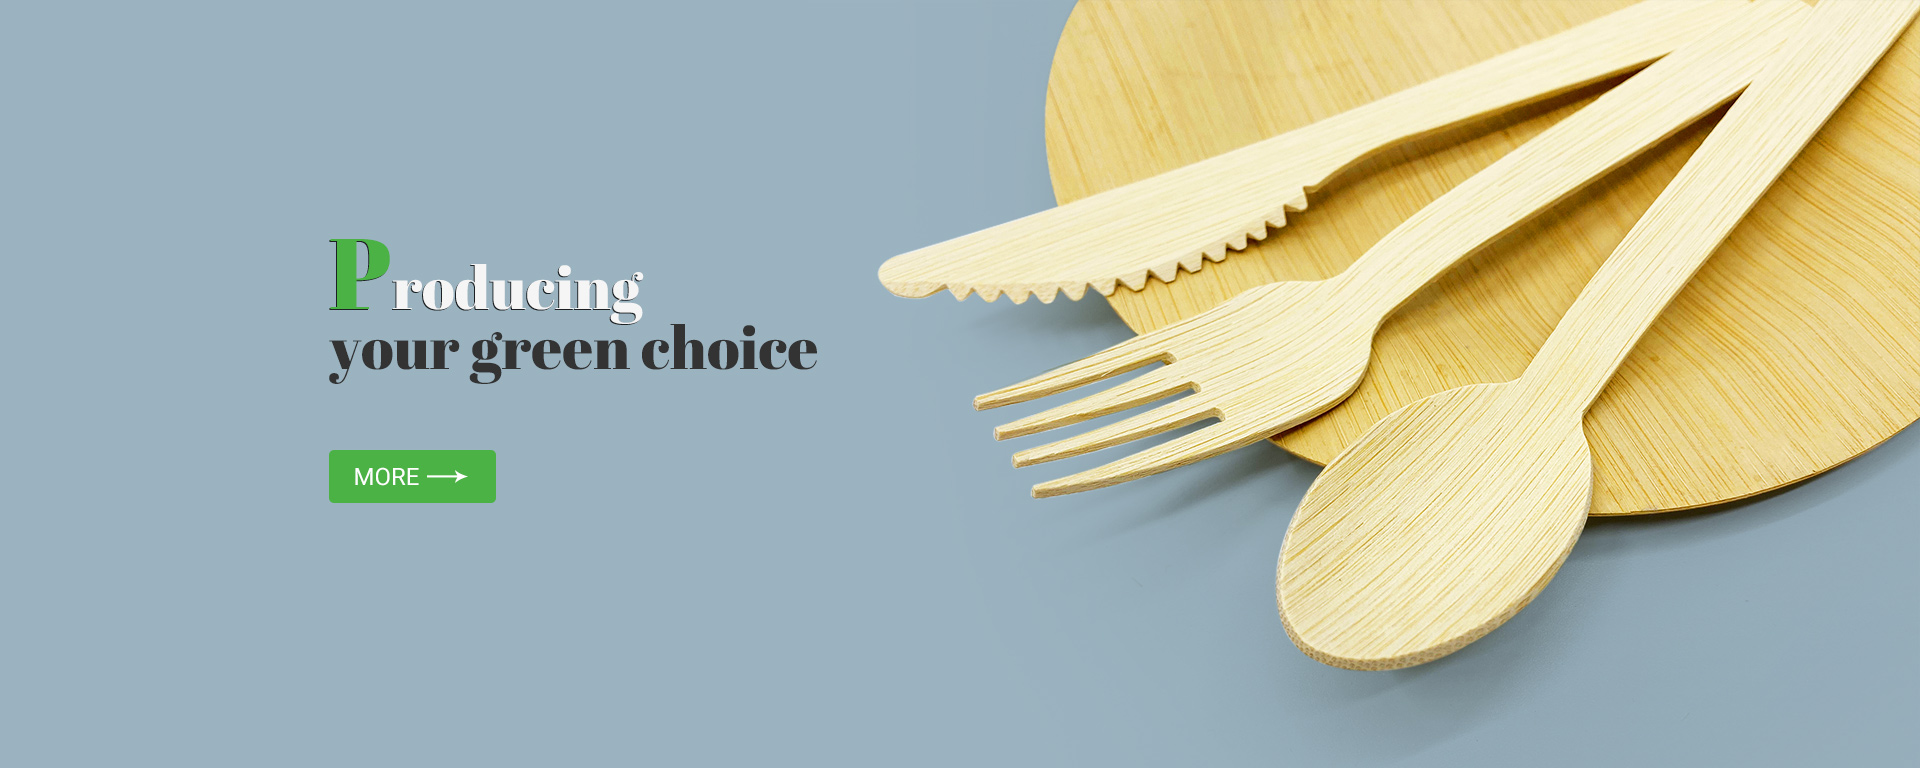 Bamboo & Wooden Cutlery